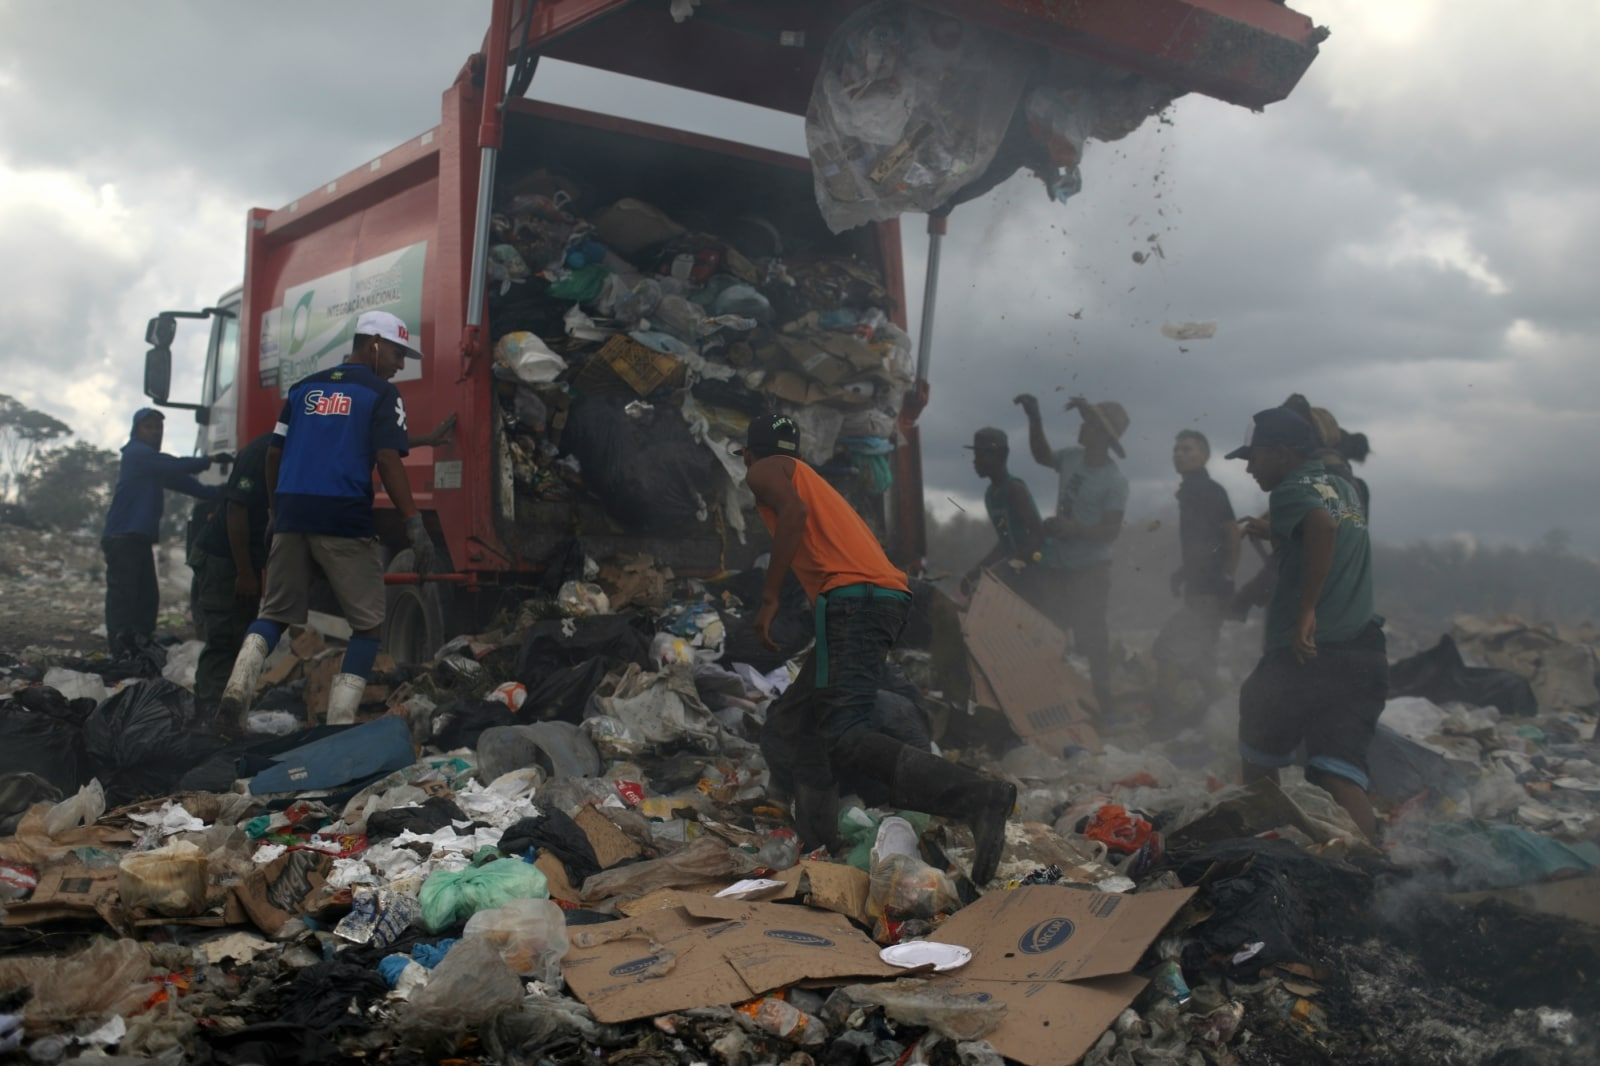 Venezuelan migrants wait while the rubbish truck unloads at the garbage dump in the border city of Pacaraima, Brazil April 13, 2019. REUTERS/Pilar Olivares